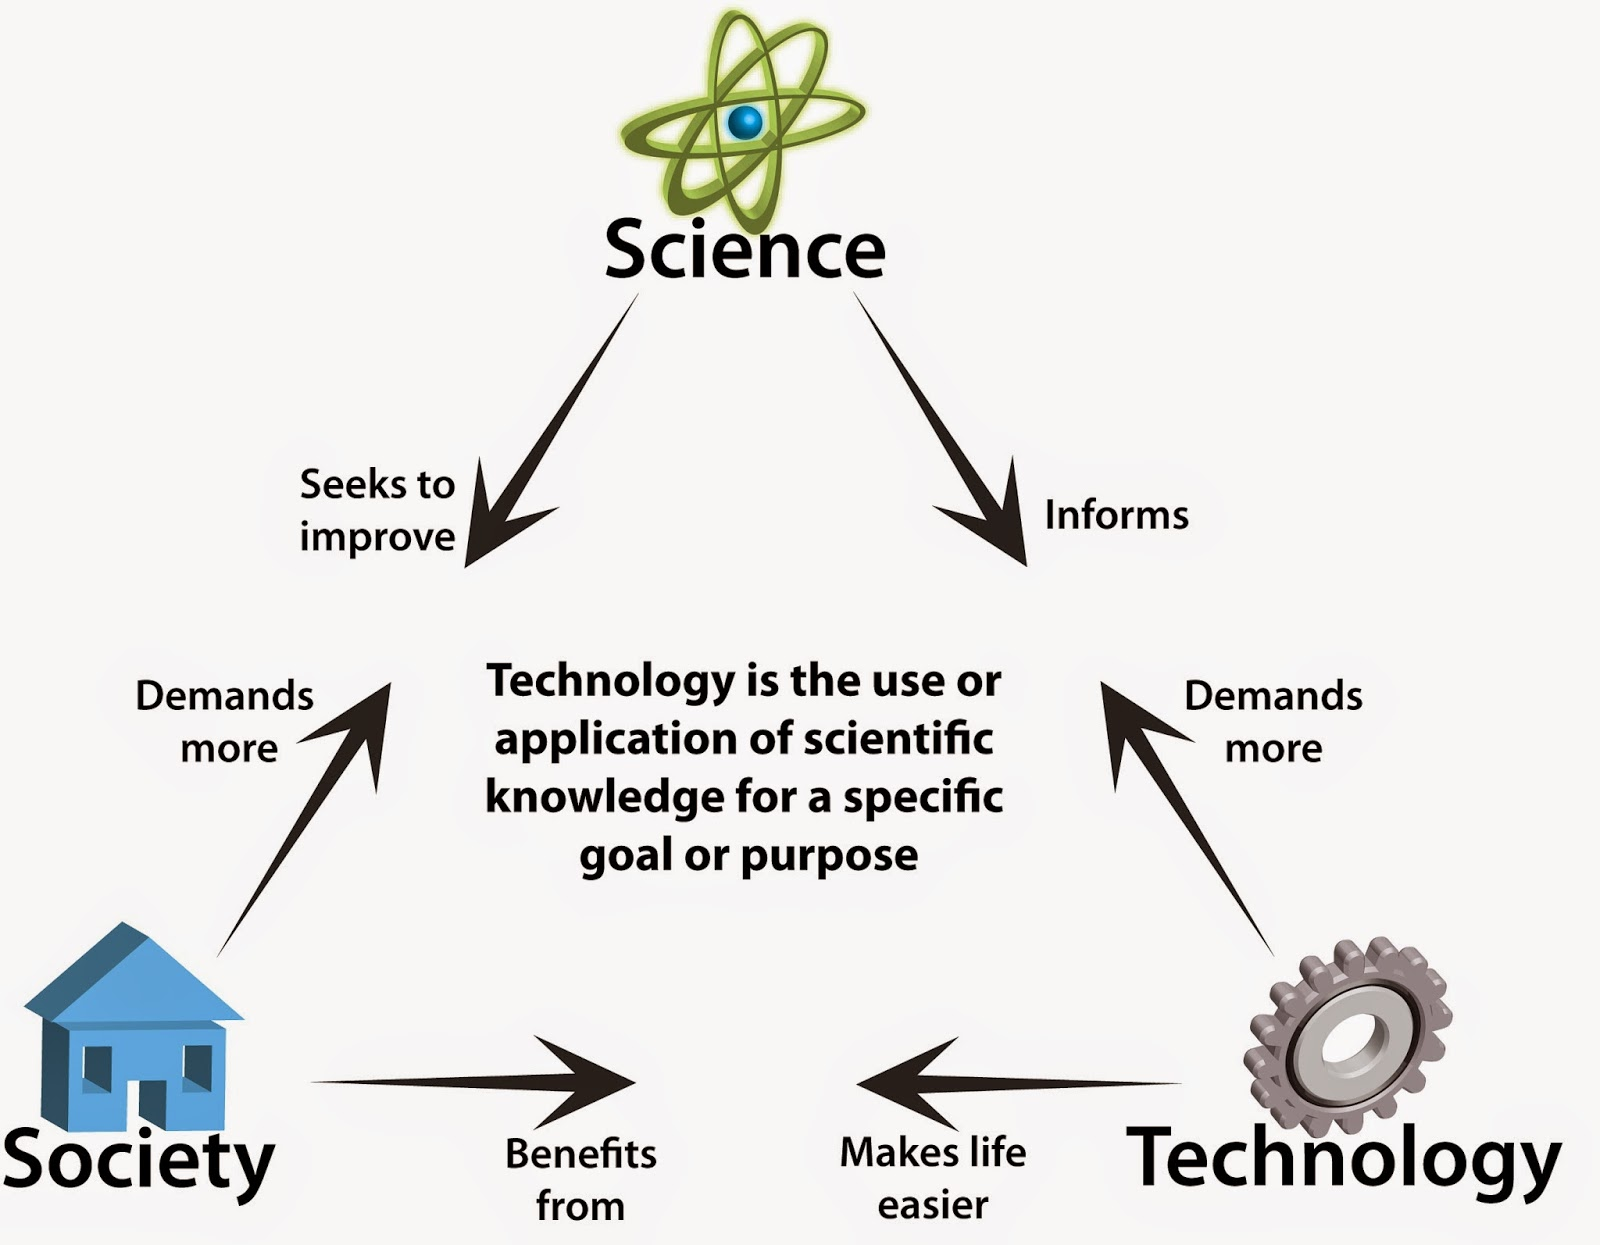 science technology and society relationship